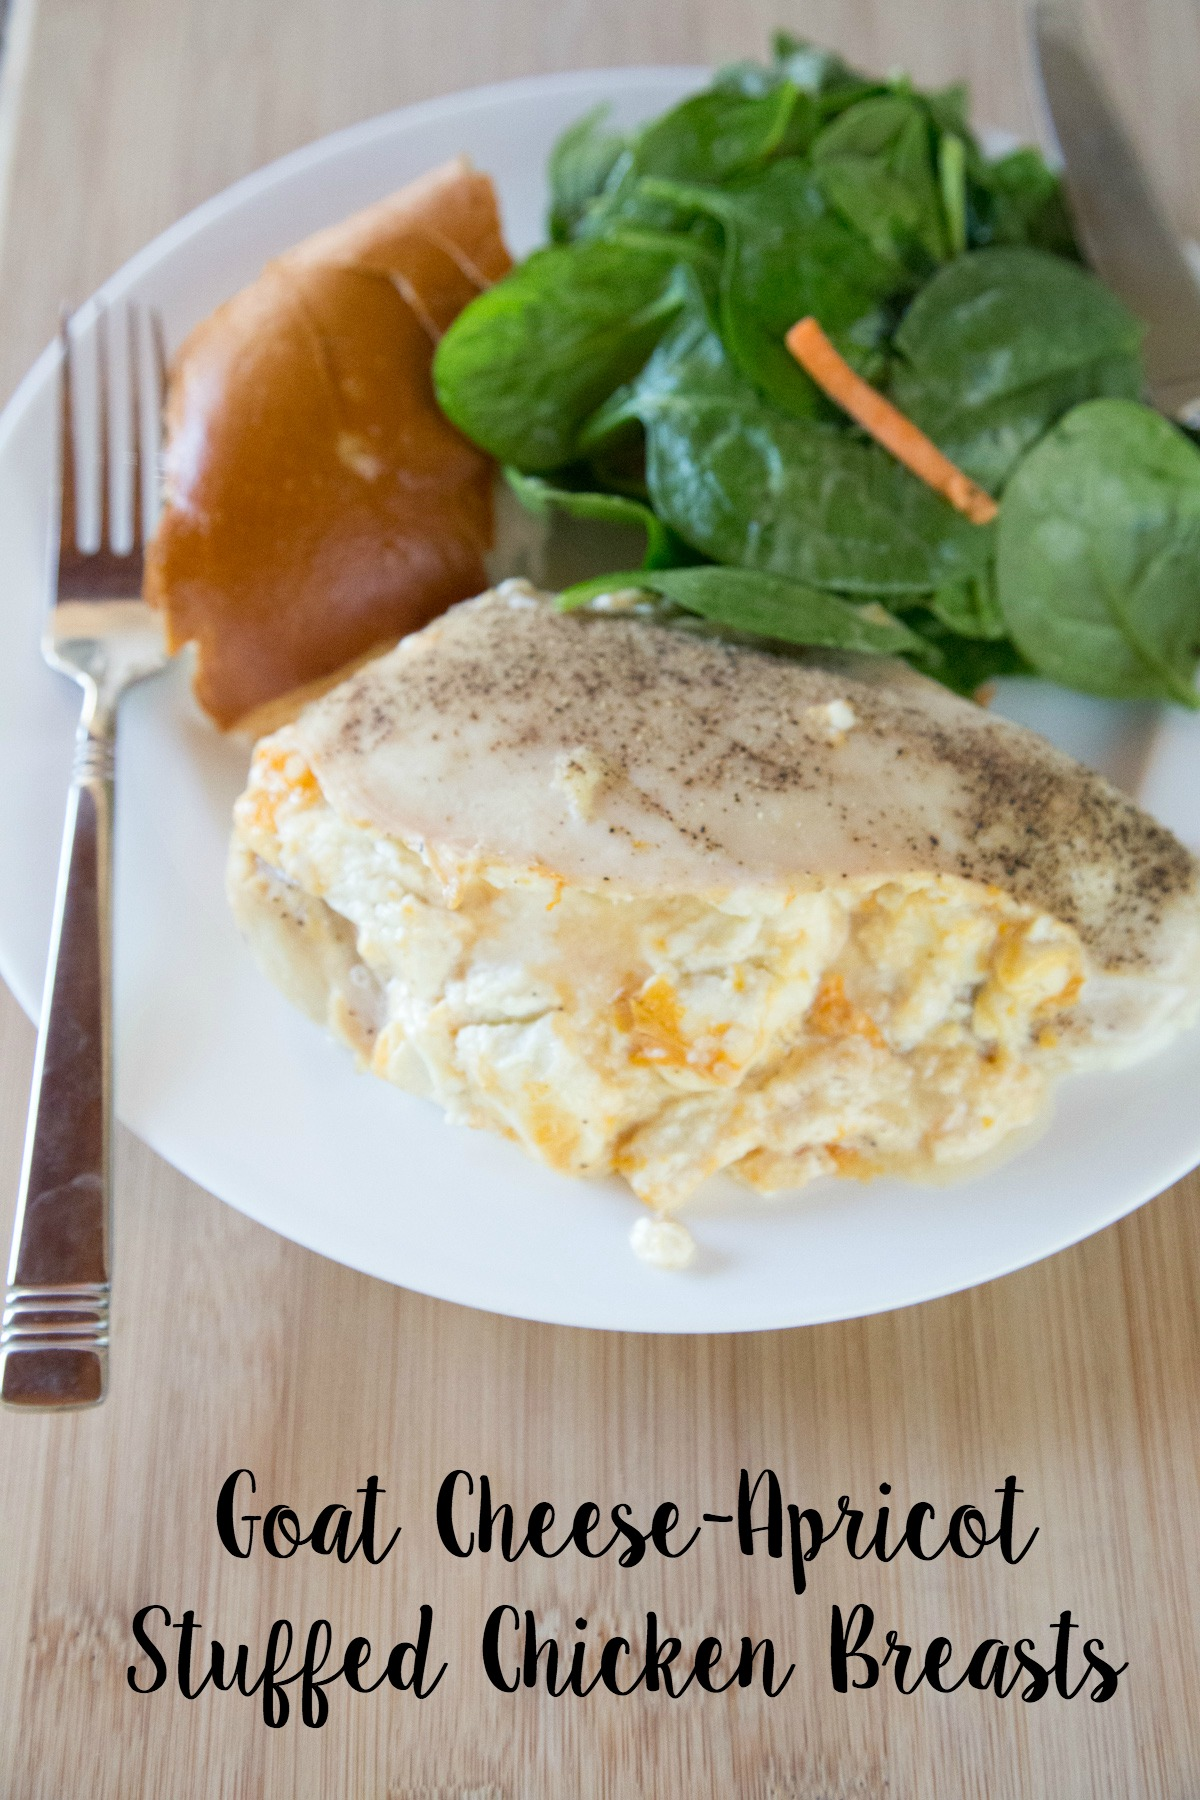 goat cheese apricot stuffed chicken breasts